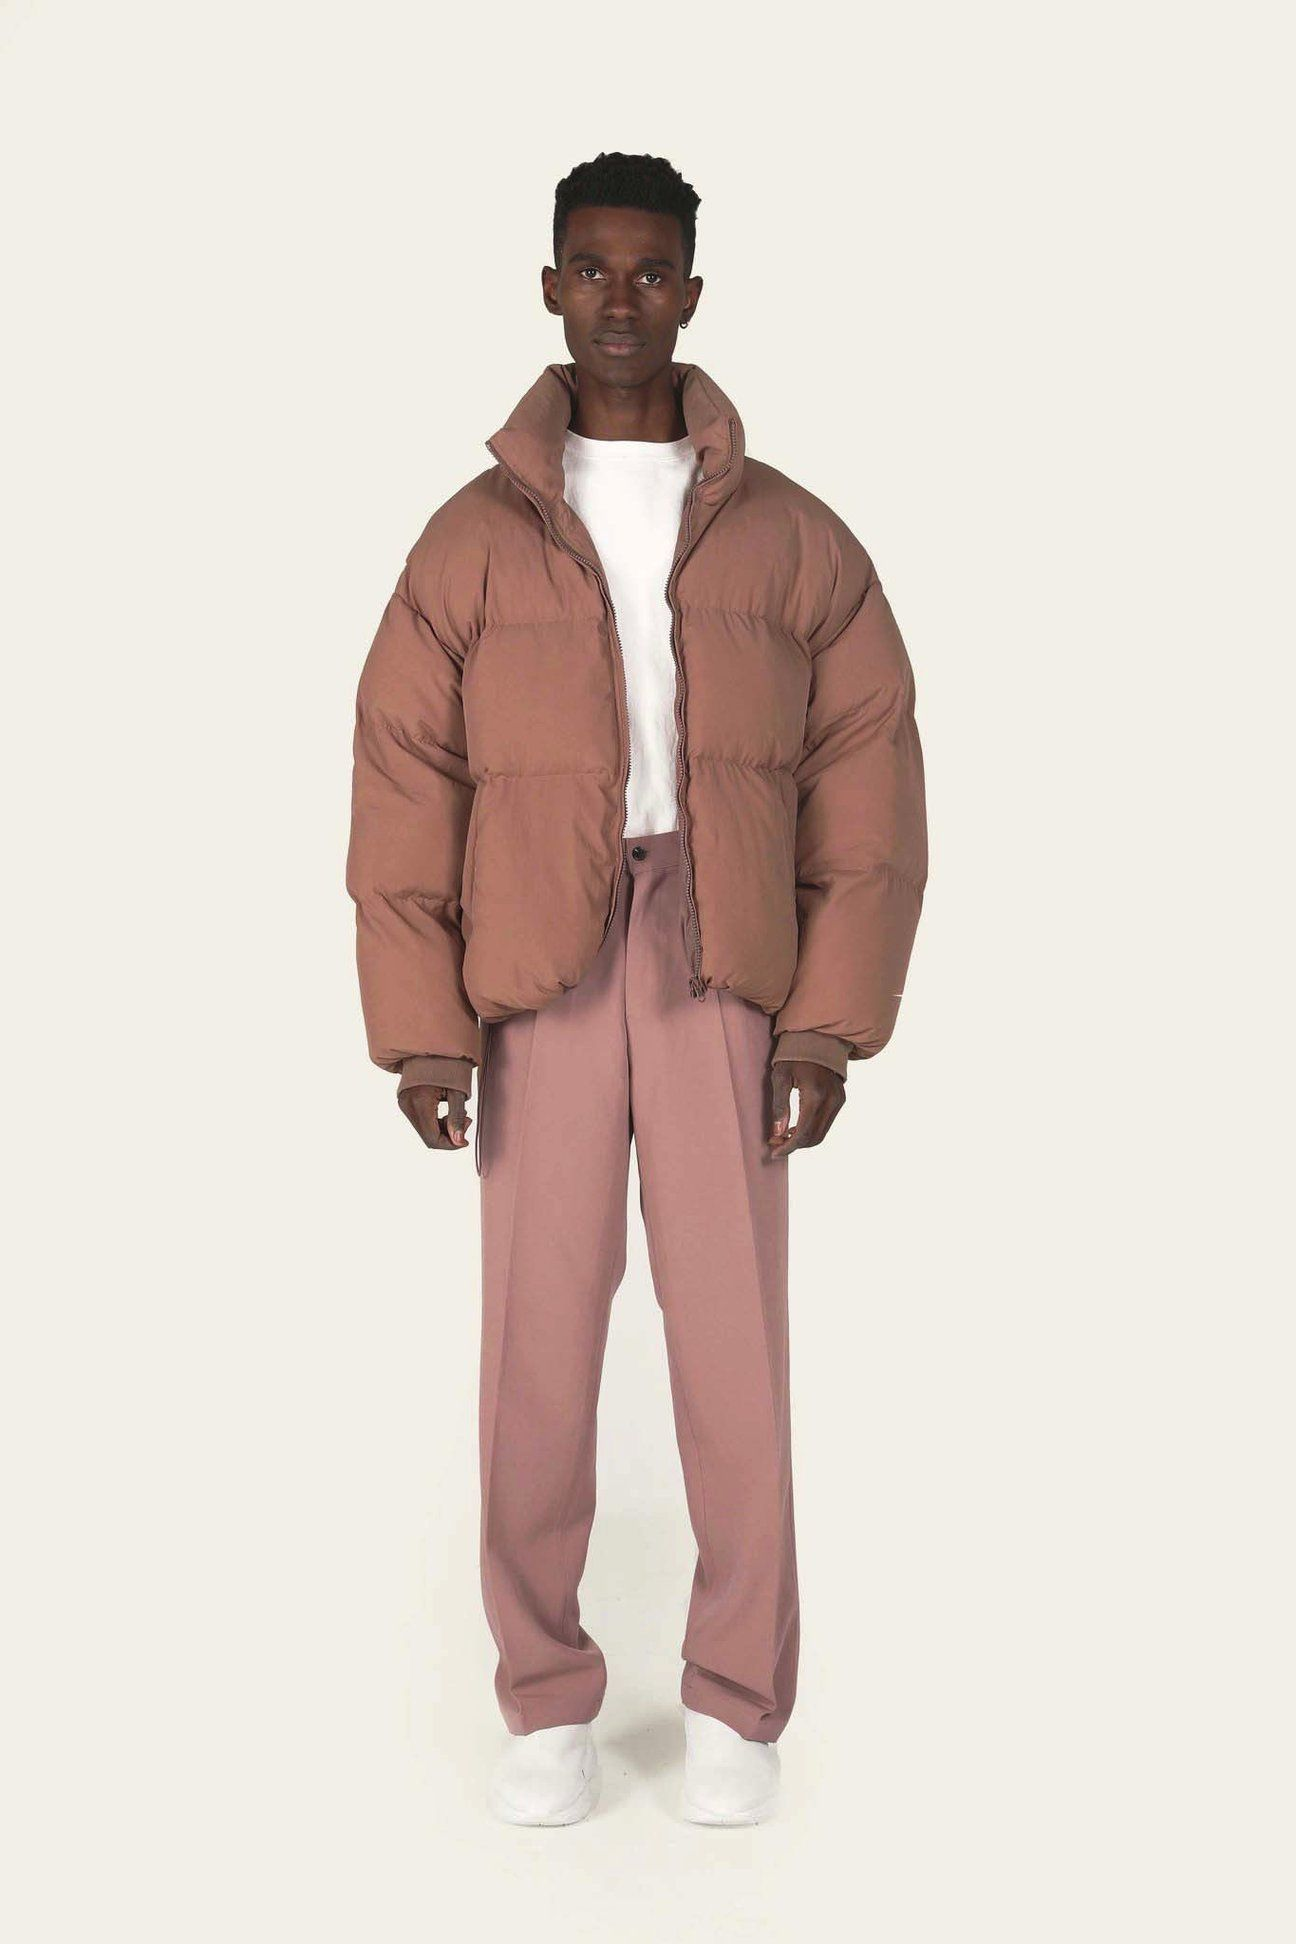 Cold Laundry Tonal Brown Puffer Coldlaundry In 2020 Puffer My